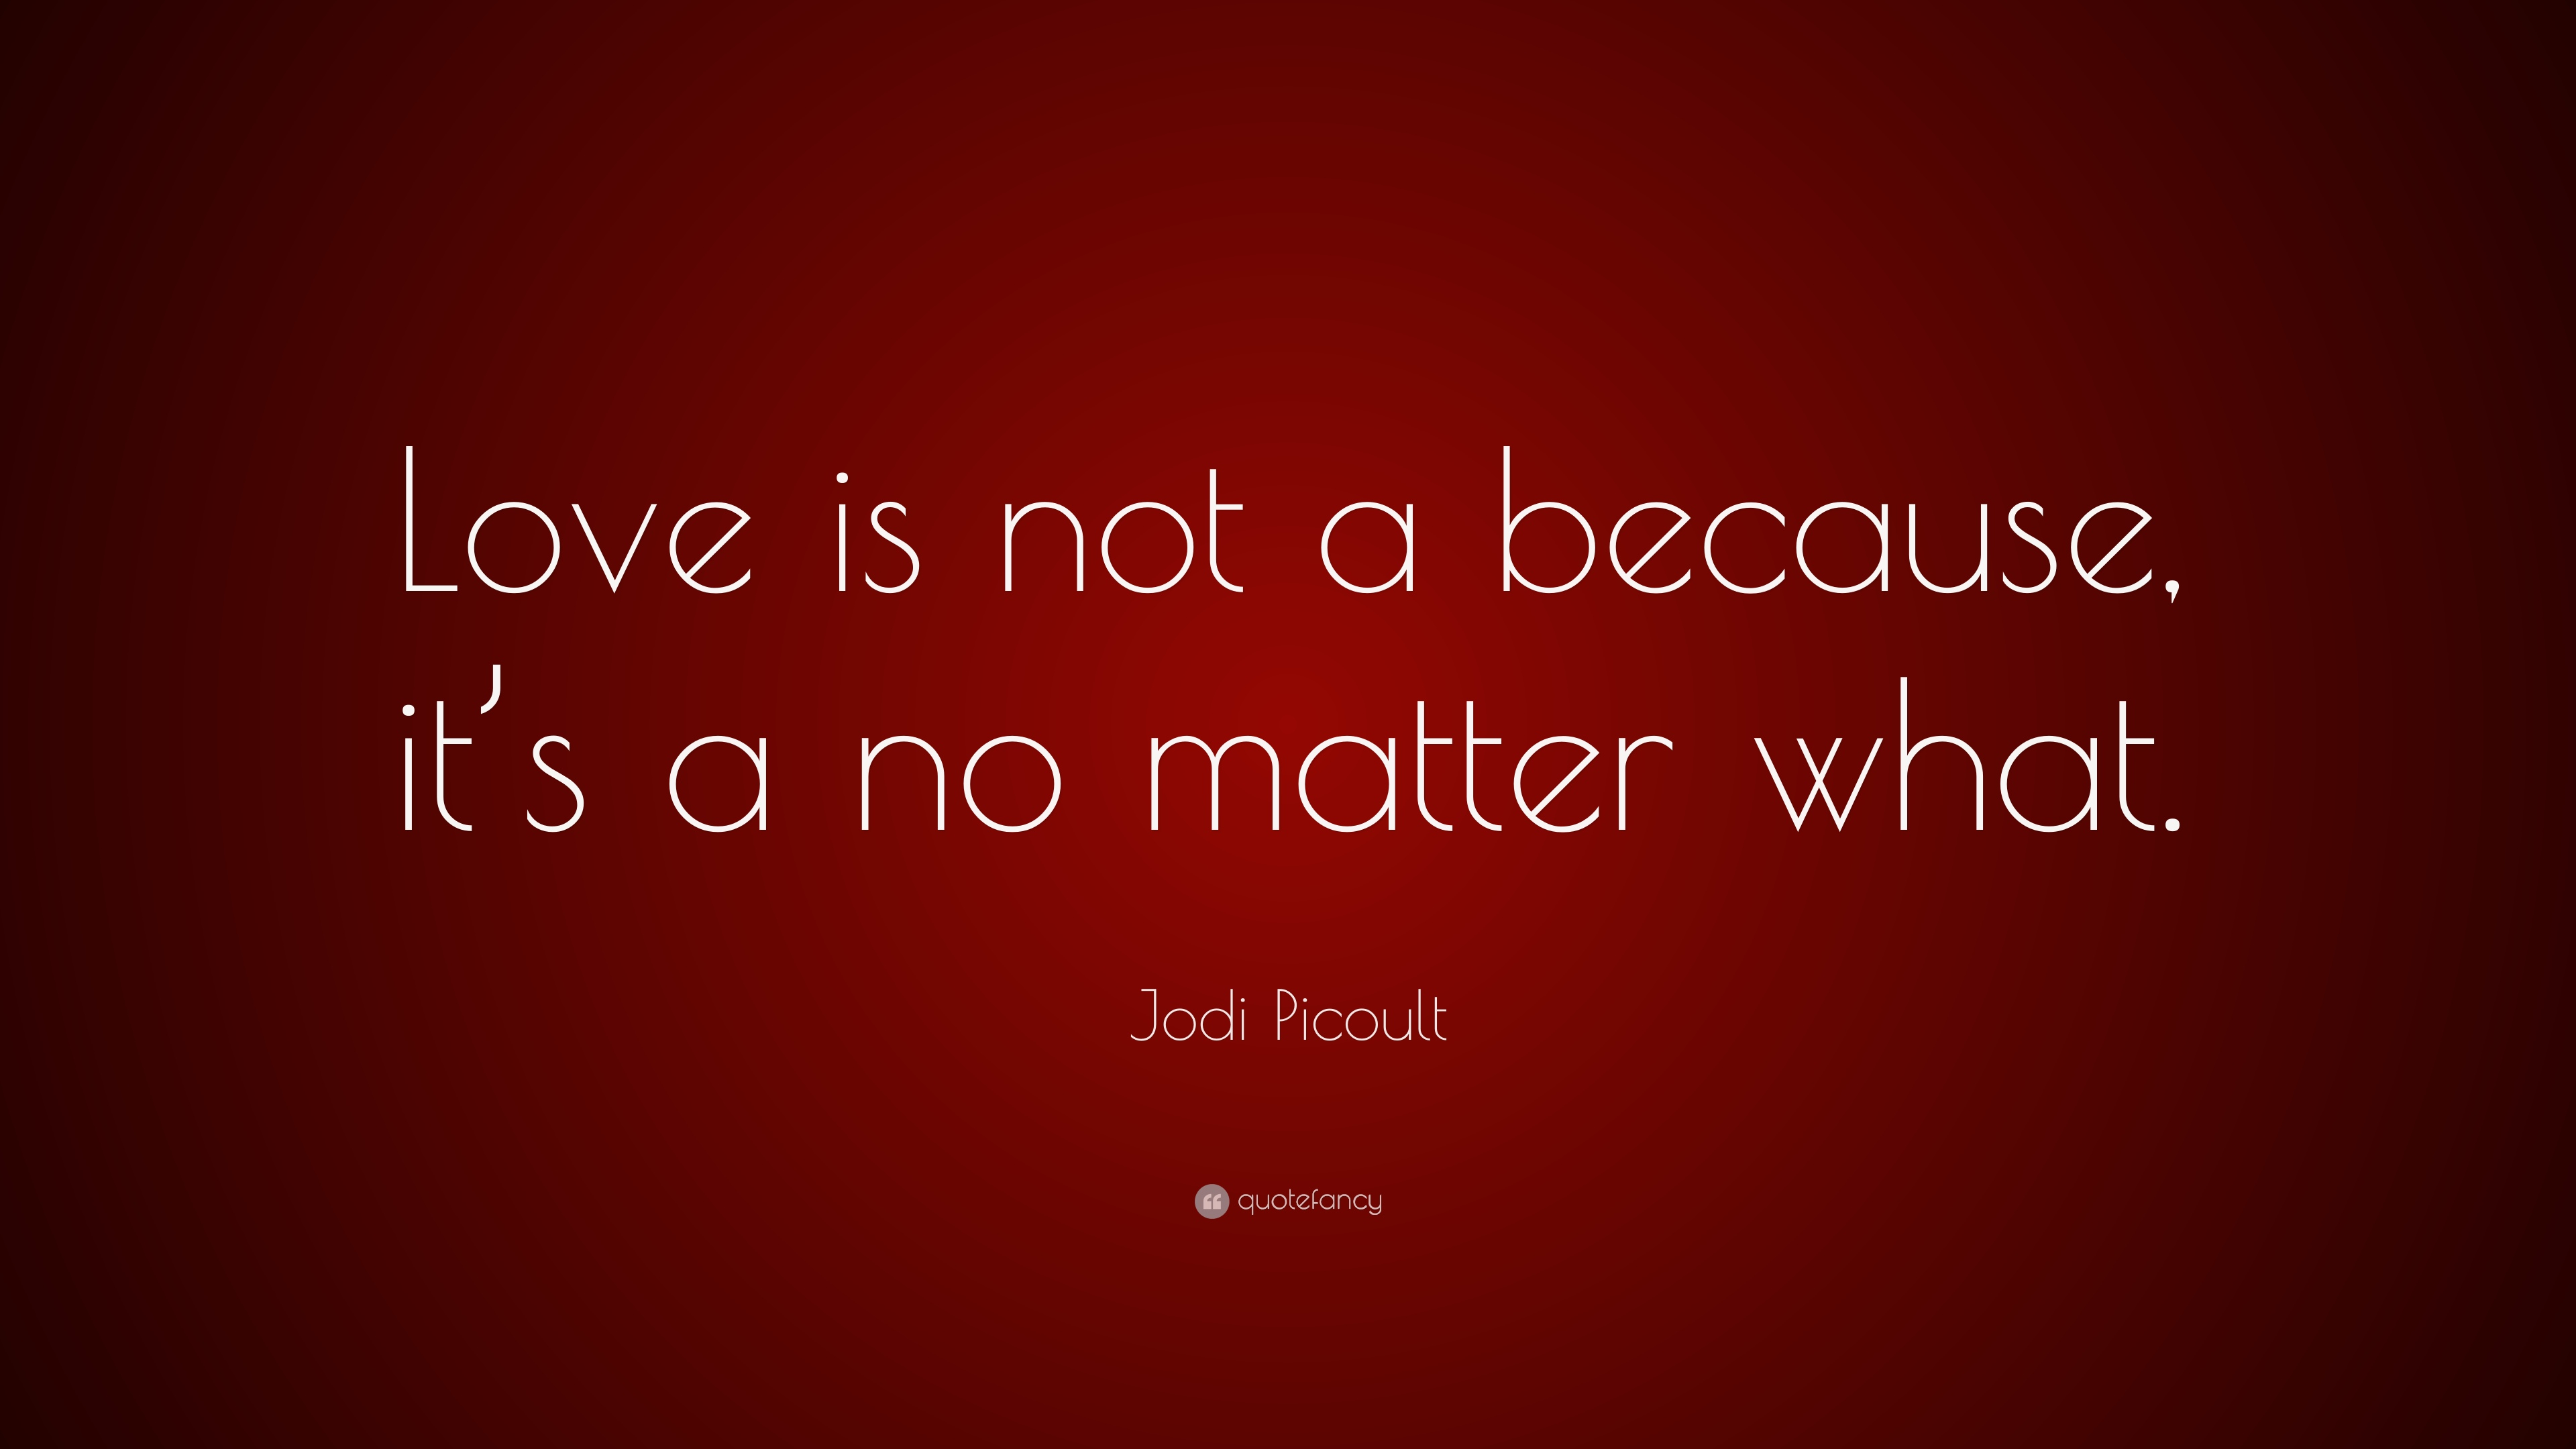 Love Wallpapers With Matter : Jodi Picoult Quote: ?Love is not a because, it s a no matter what.? (10 wallpapers) - Quotefancy